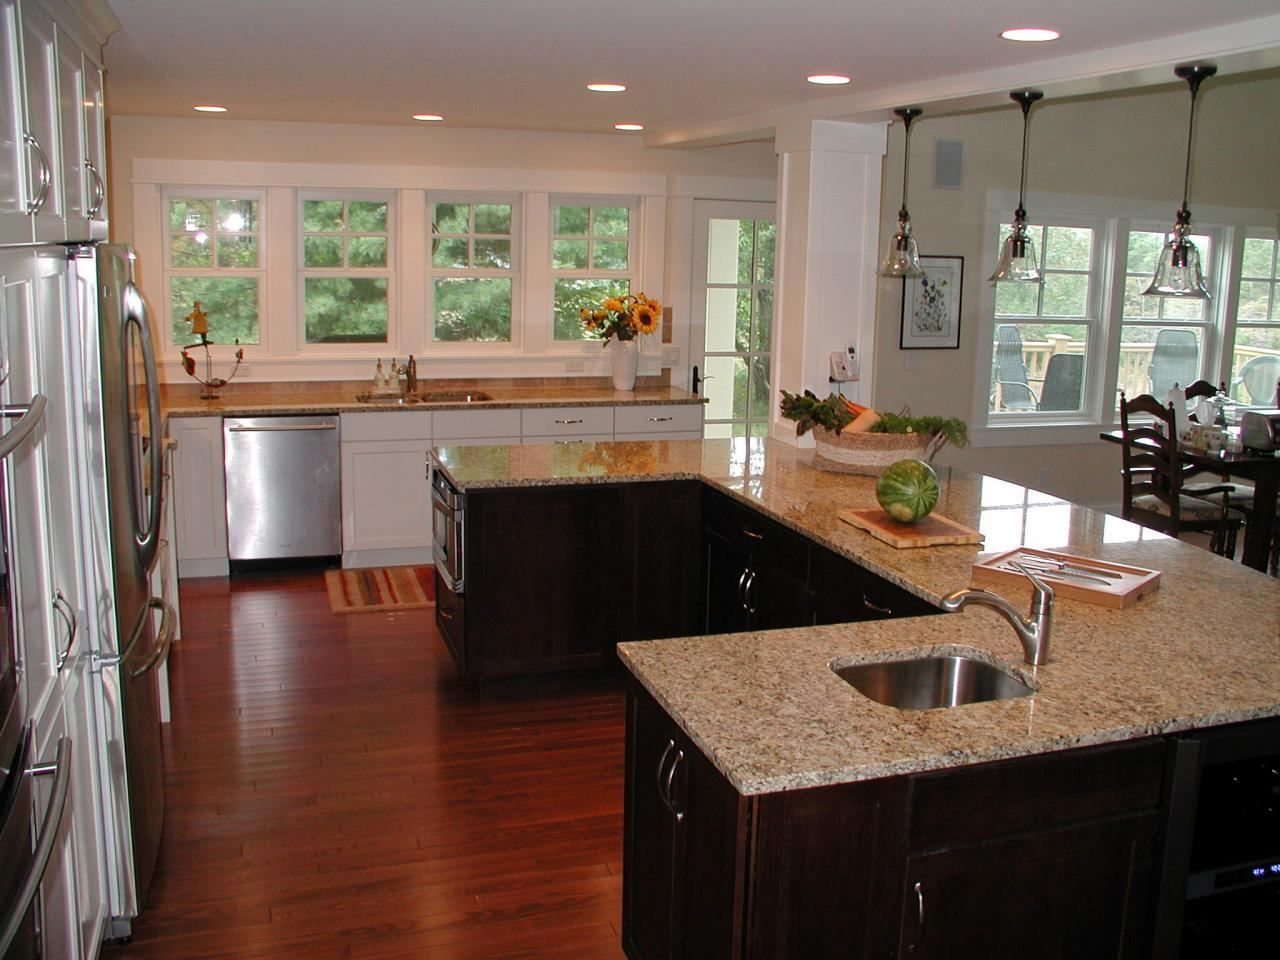 sink kitchen best wet bar images dimensions under window ideas refrigerator small do it yourself on u kitchen with island id=87481